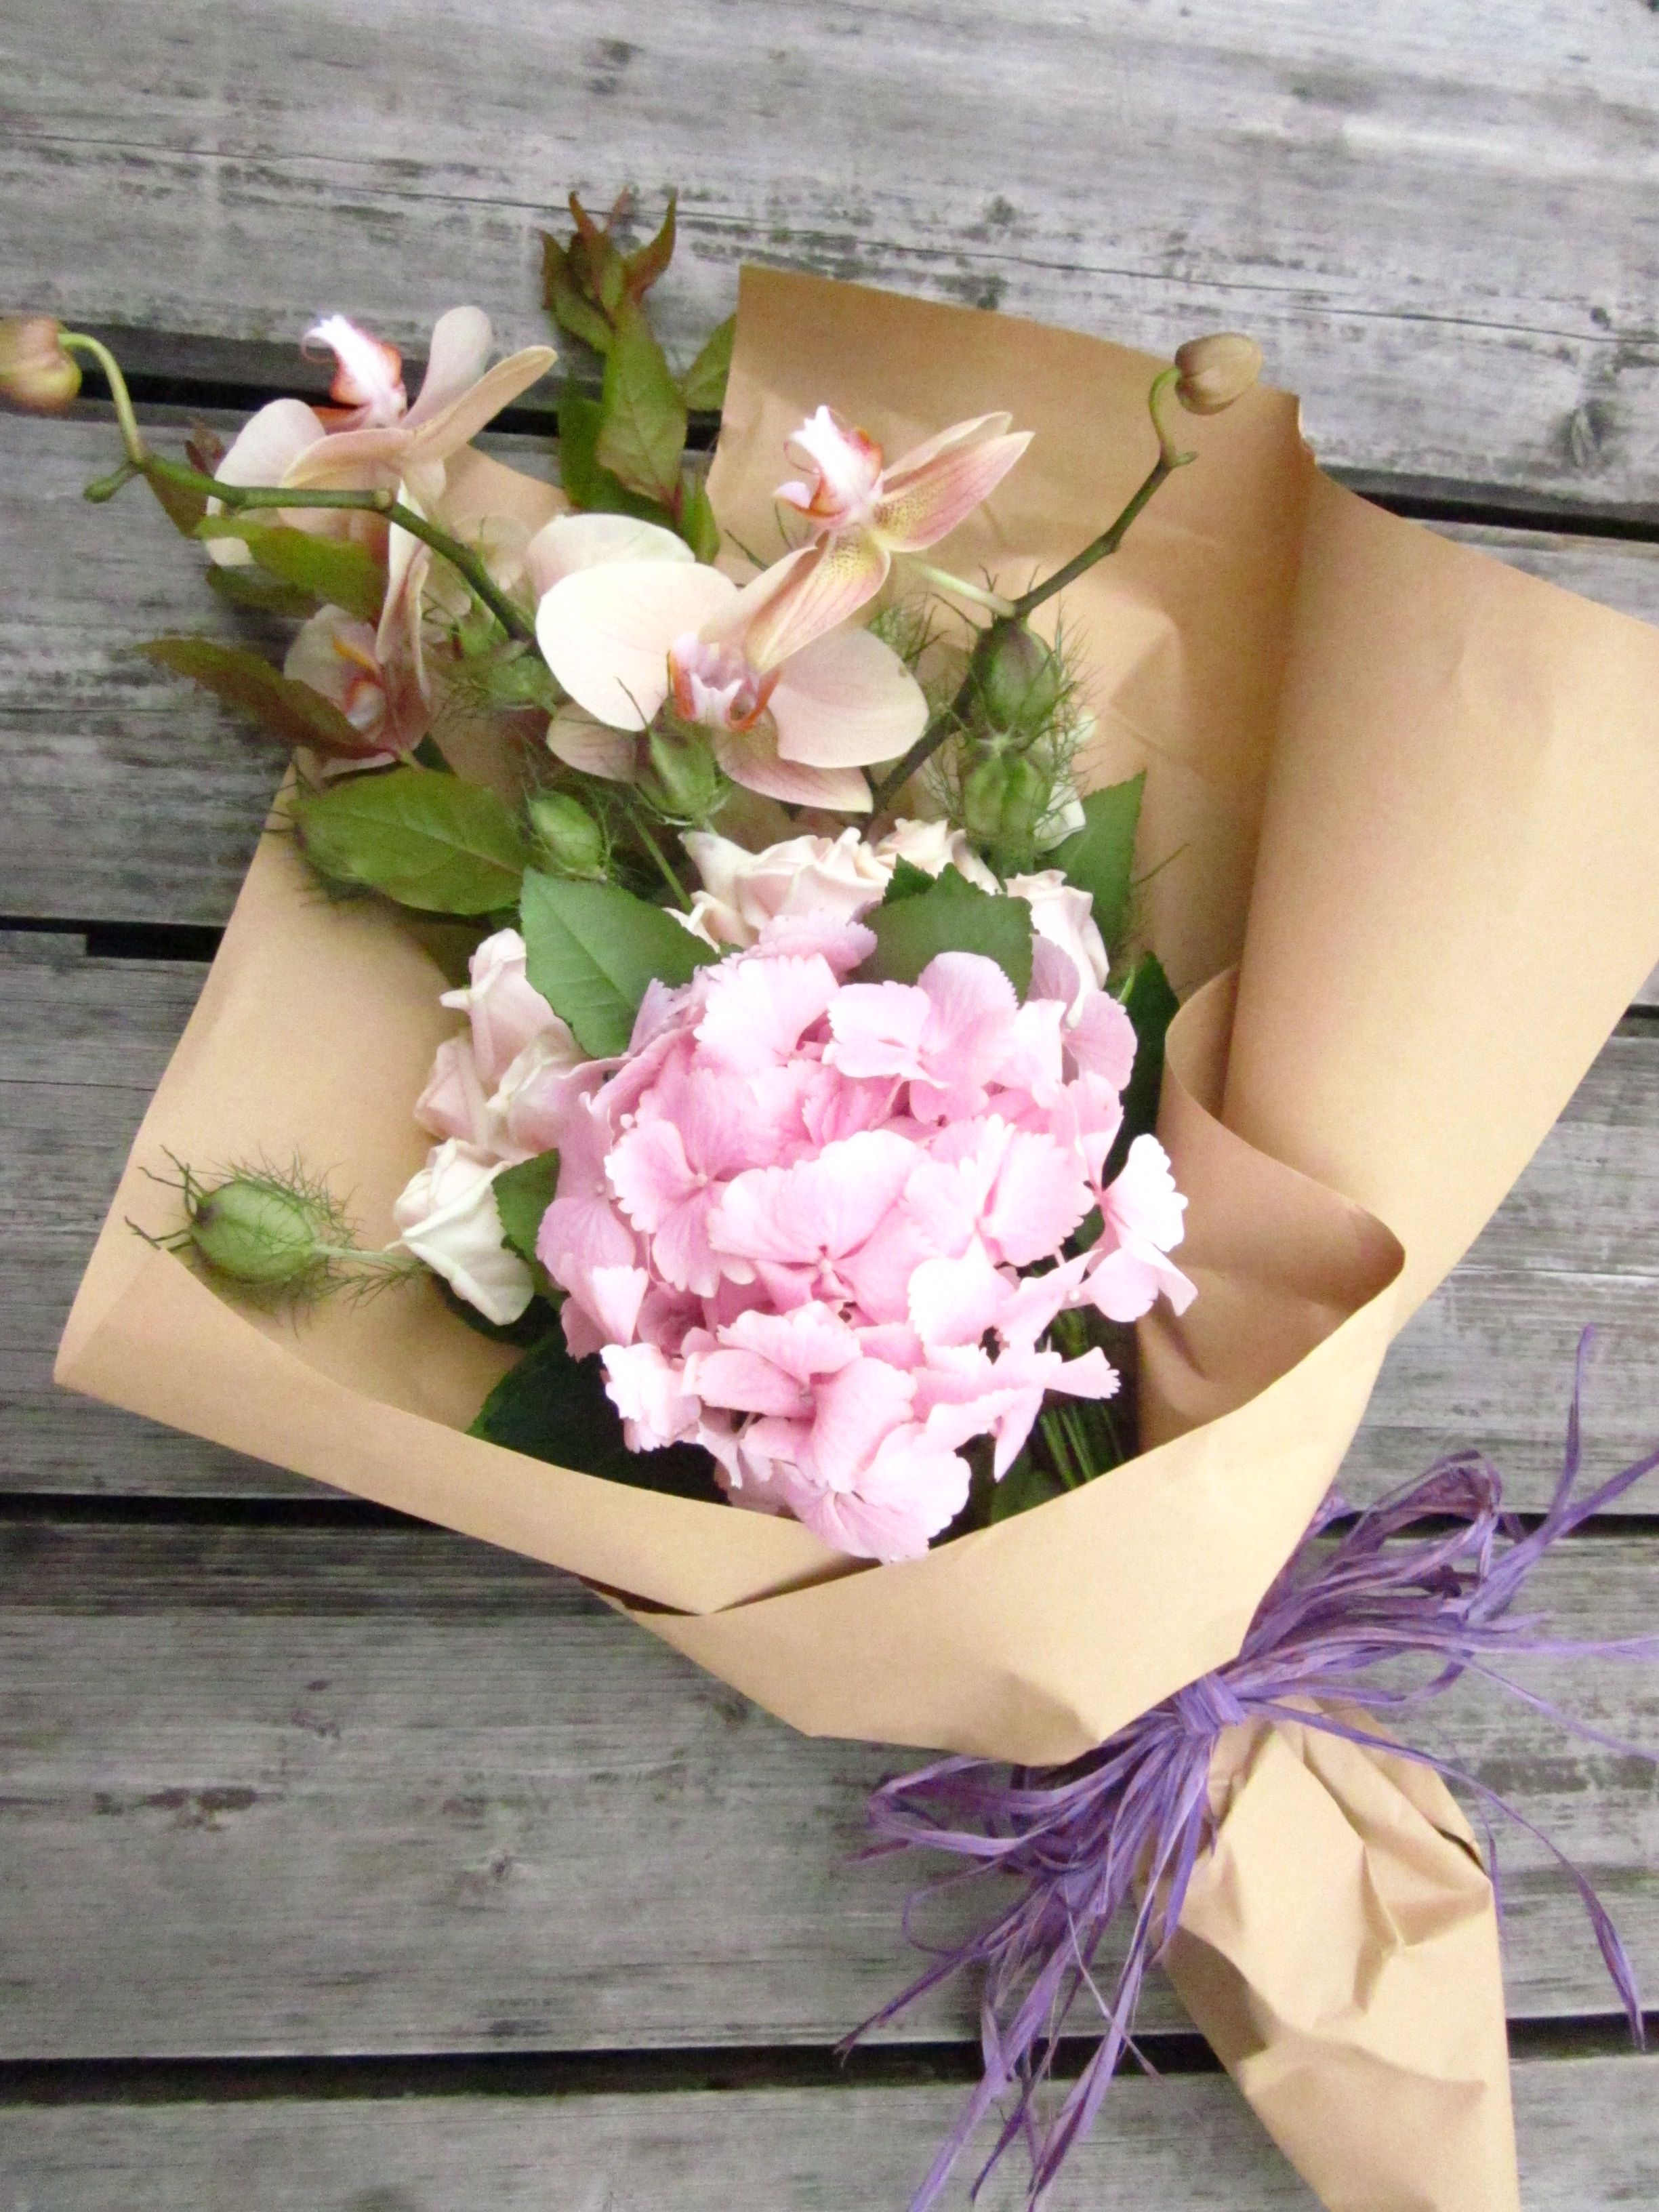 Flowers Wrapped In Brown Paper Events Pinterest Floral